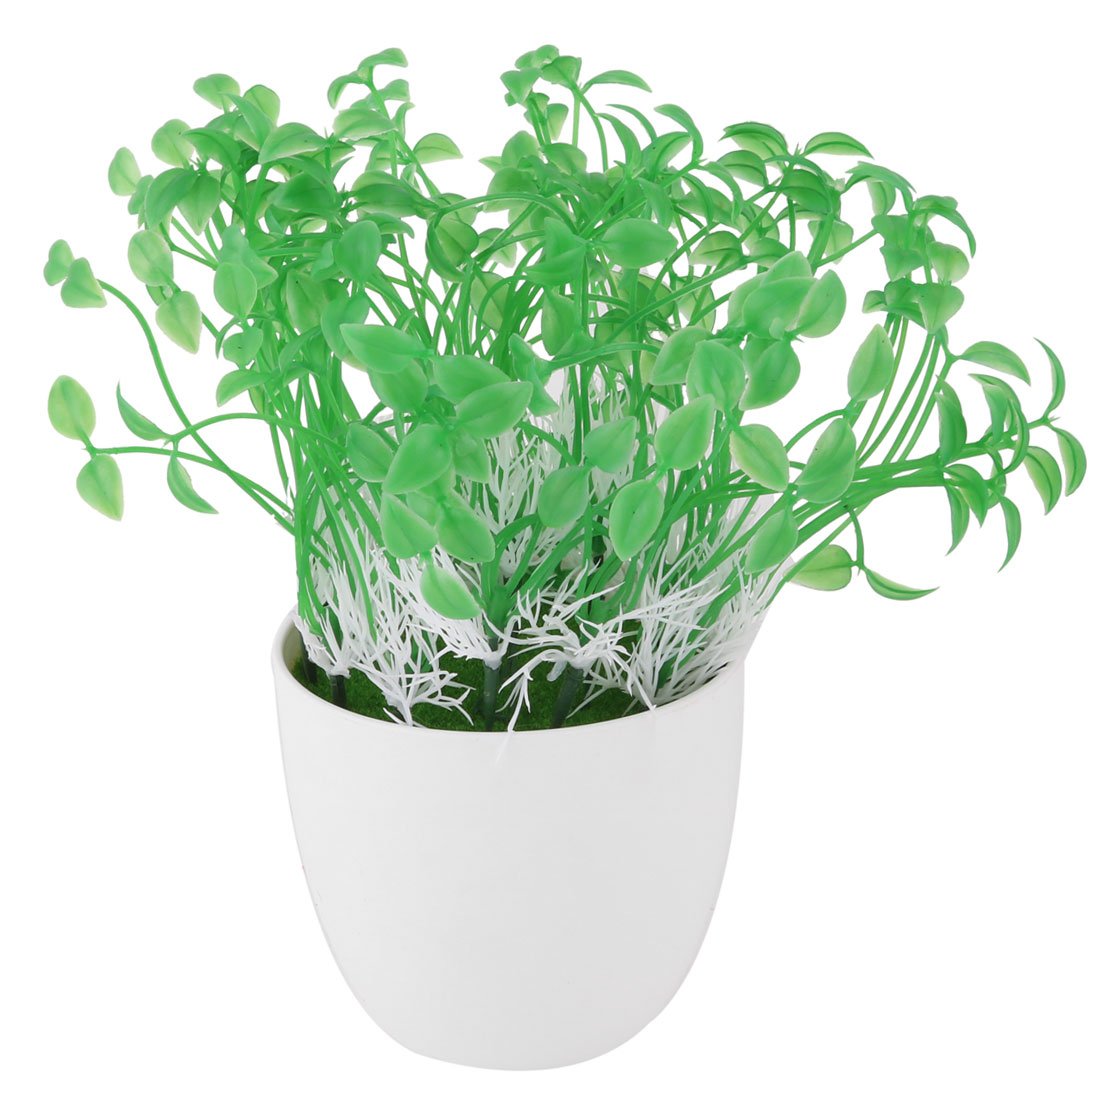 Office Plastic Artificial Bean Sprouts Flowerpot Craft Desktop Table Decor Flower